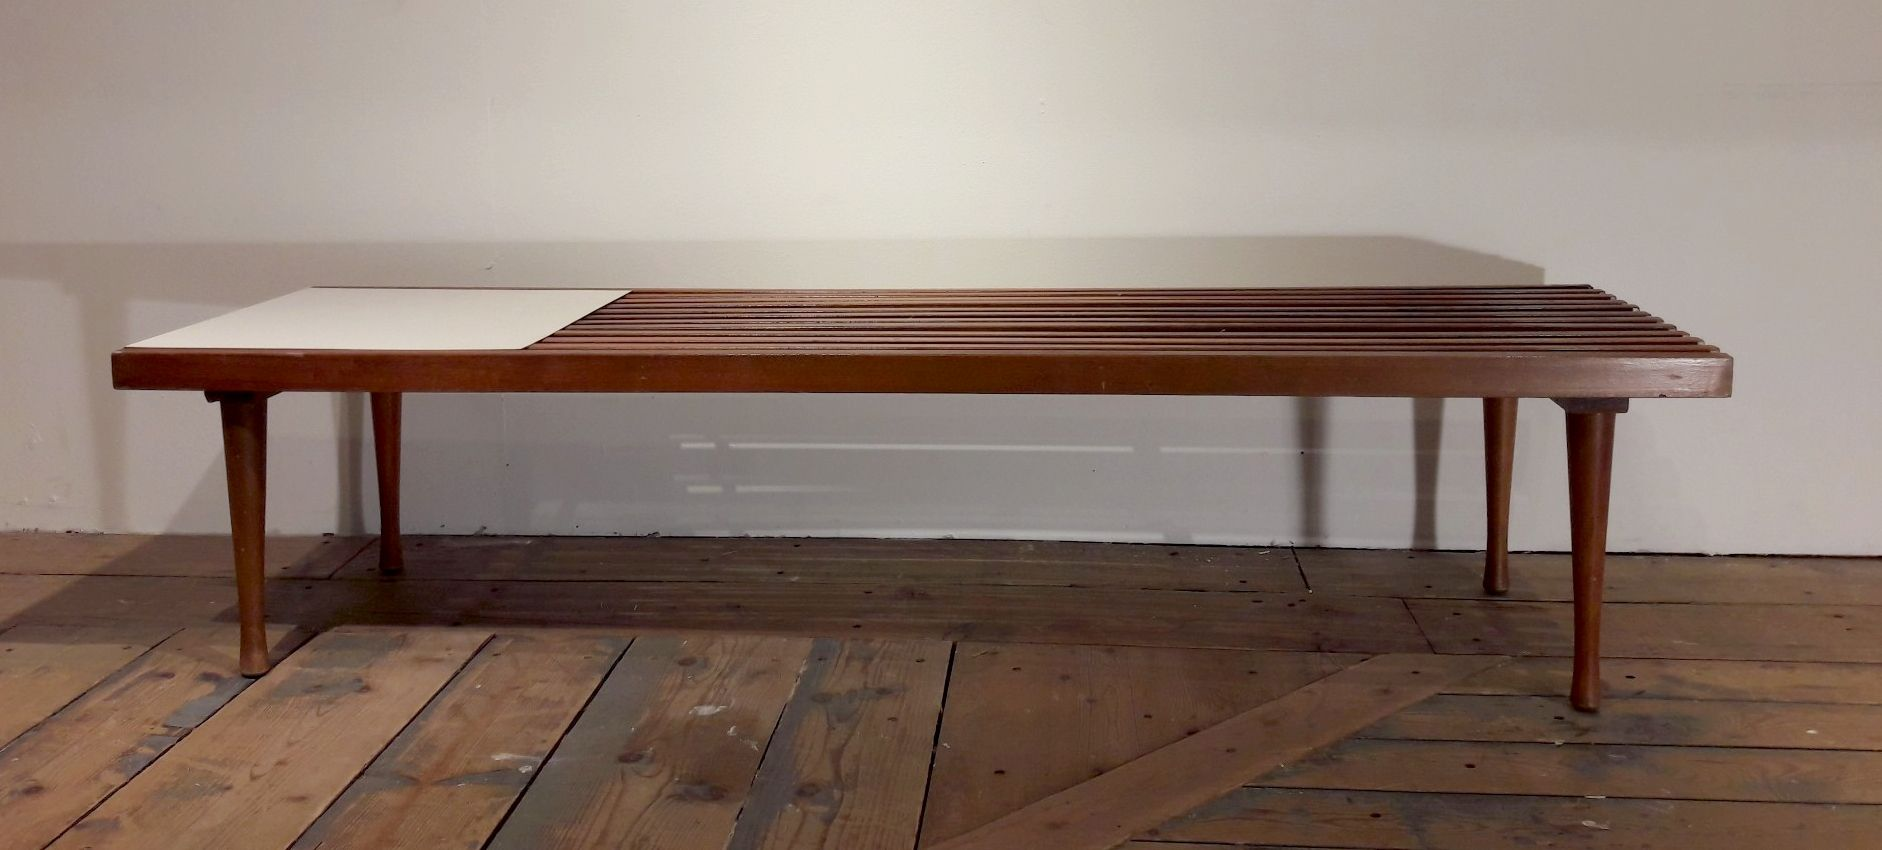 American Coffee Table in Latticed Wood and White Laminate 1960s for